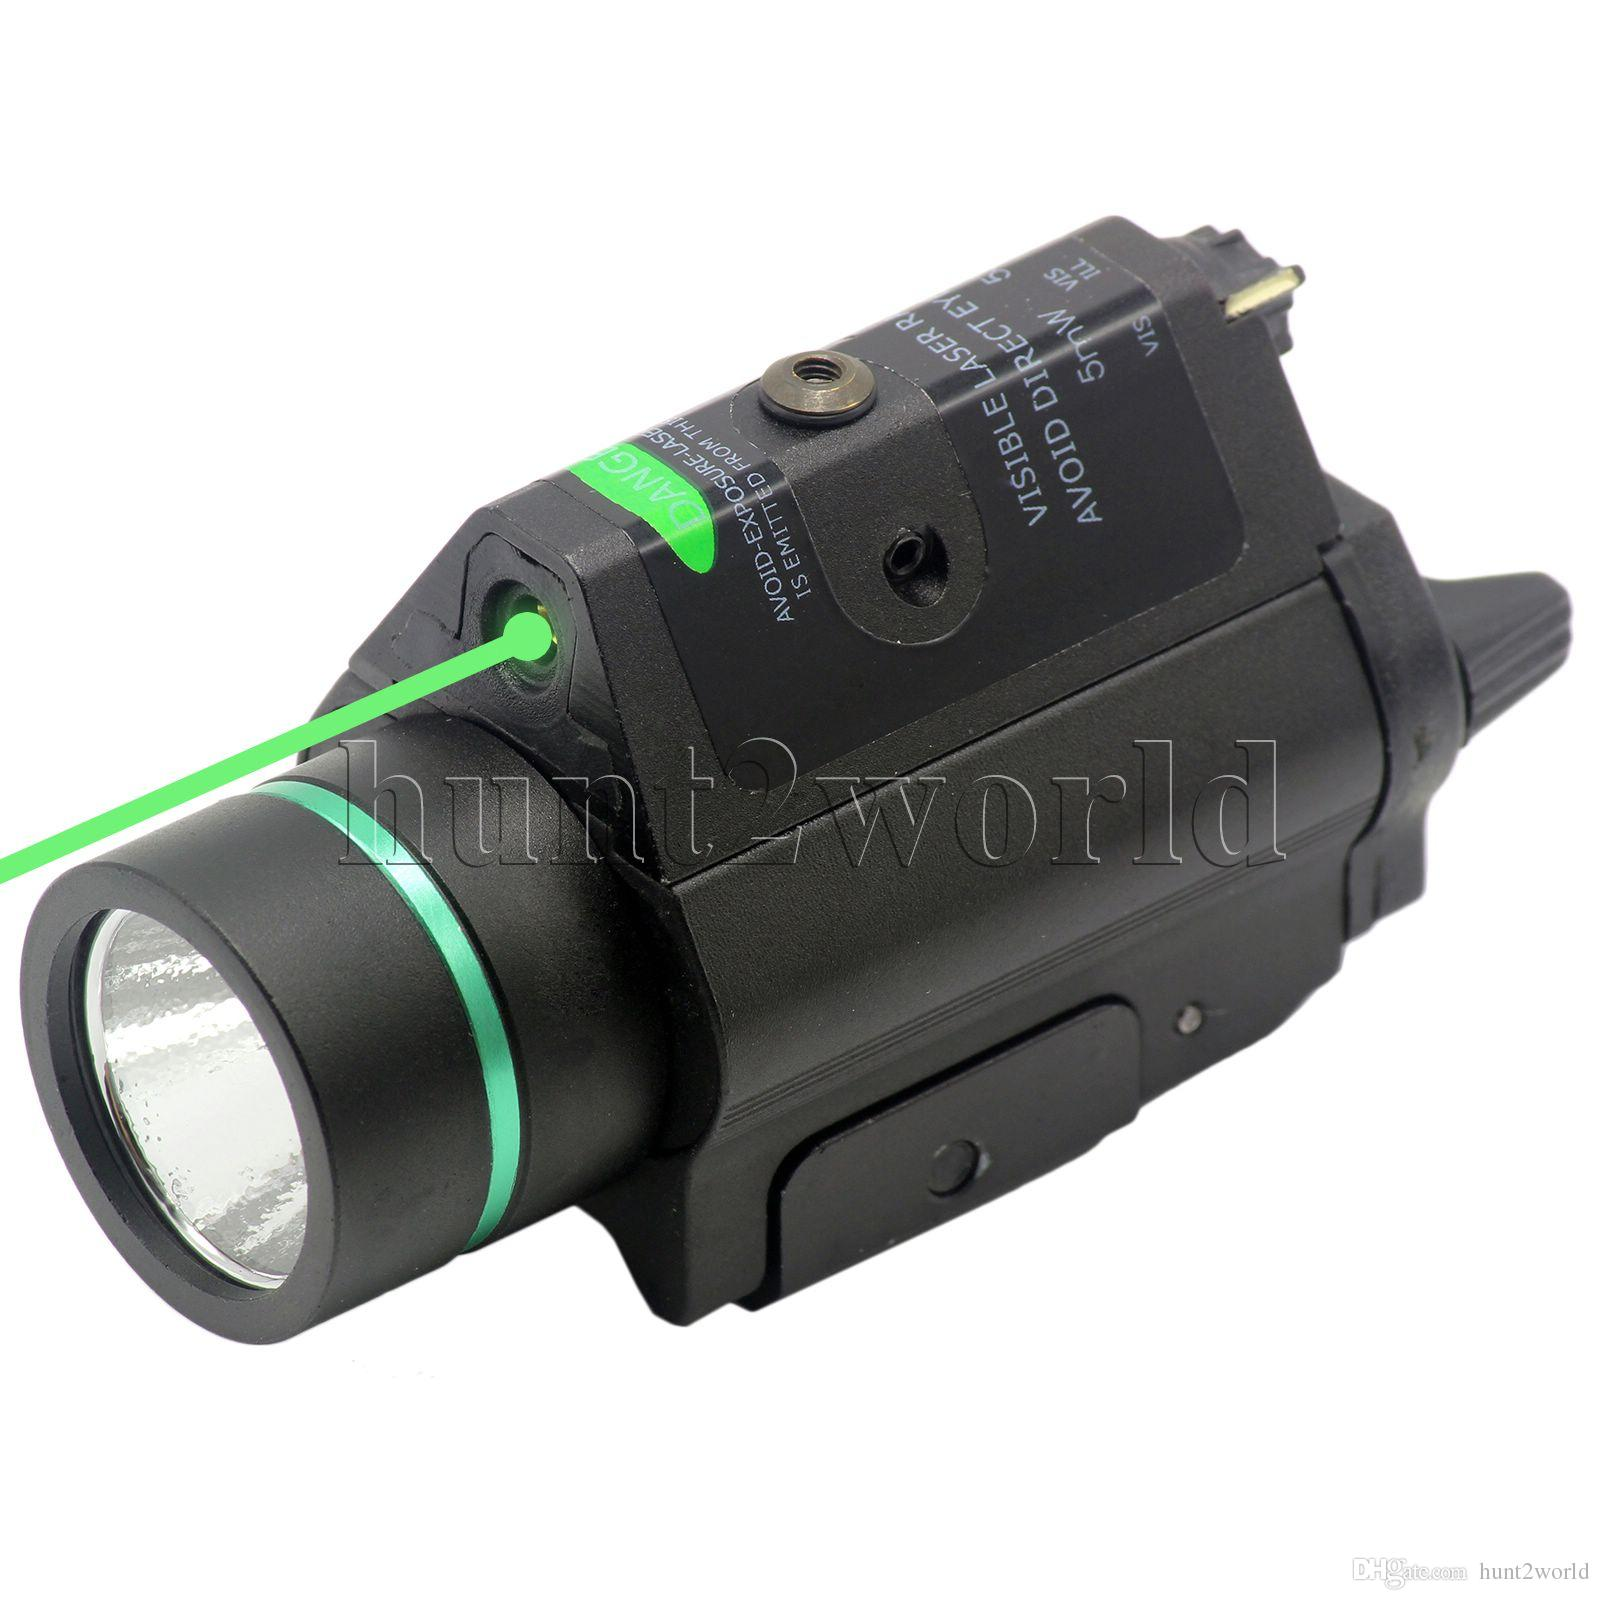 Tactical LED Flashlight Torch Green Laser Dot Sight Combo 200LM 532nm pour chass